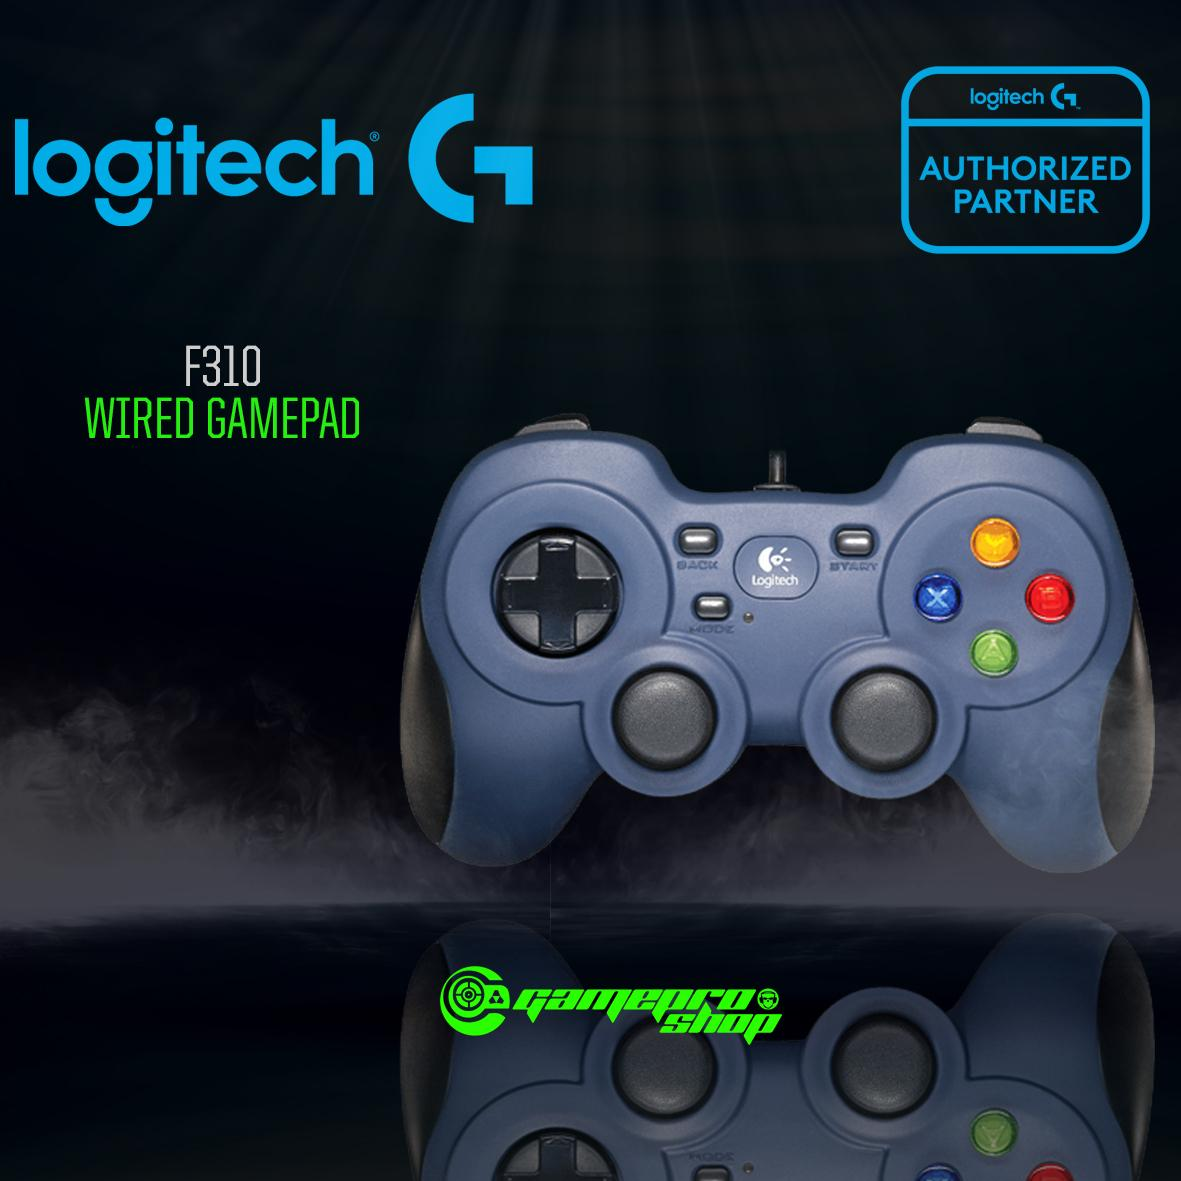 Logitech F310 Wired Gamepad *THE TECH SHOW PROMO*